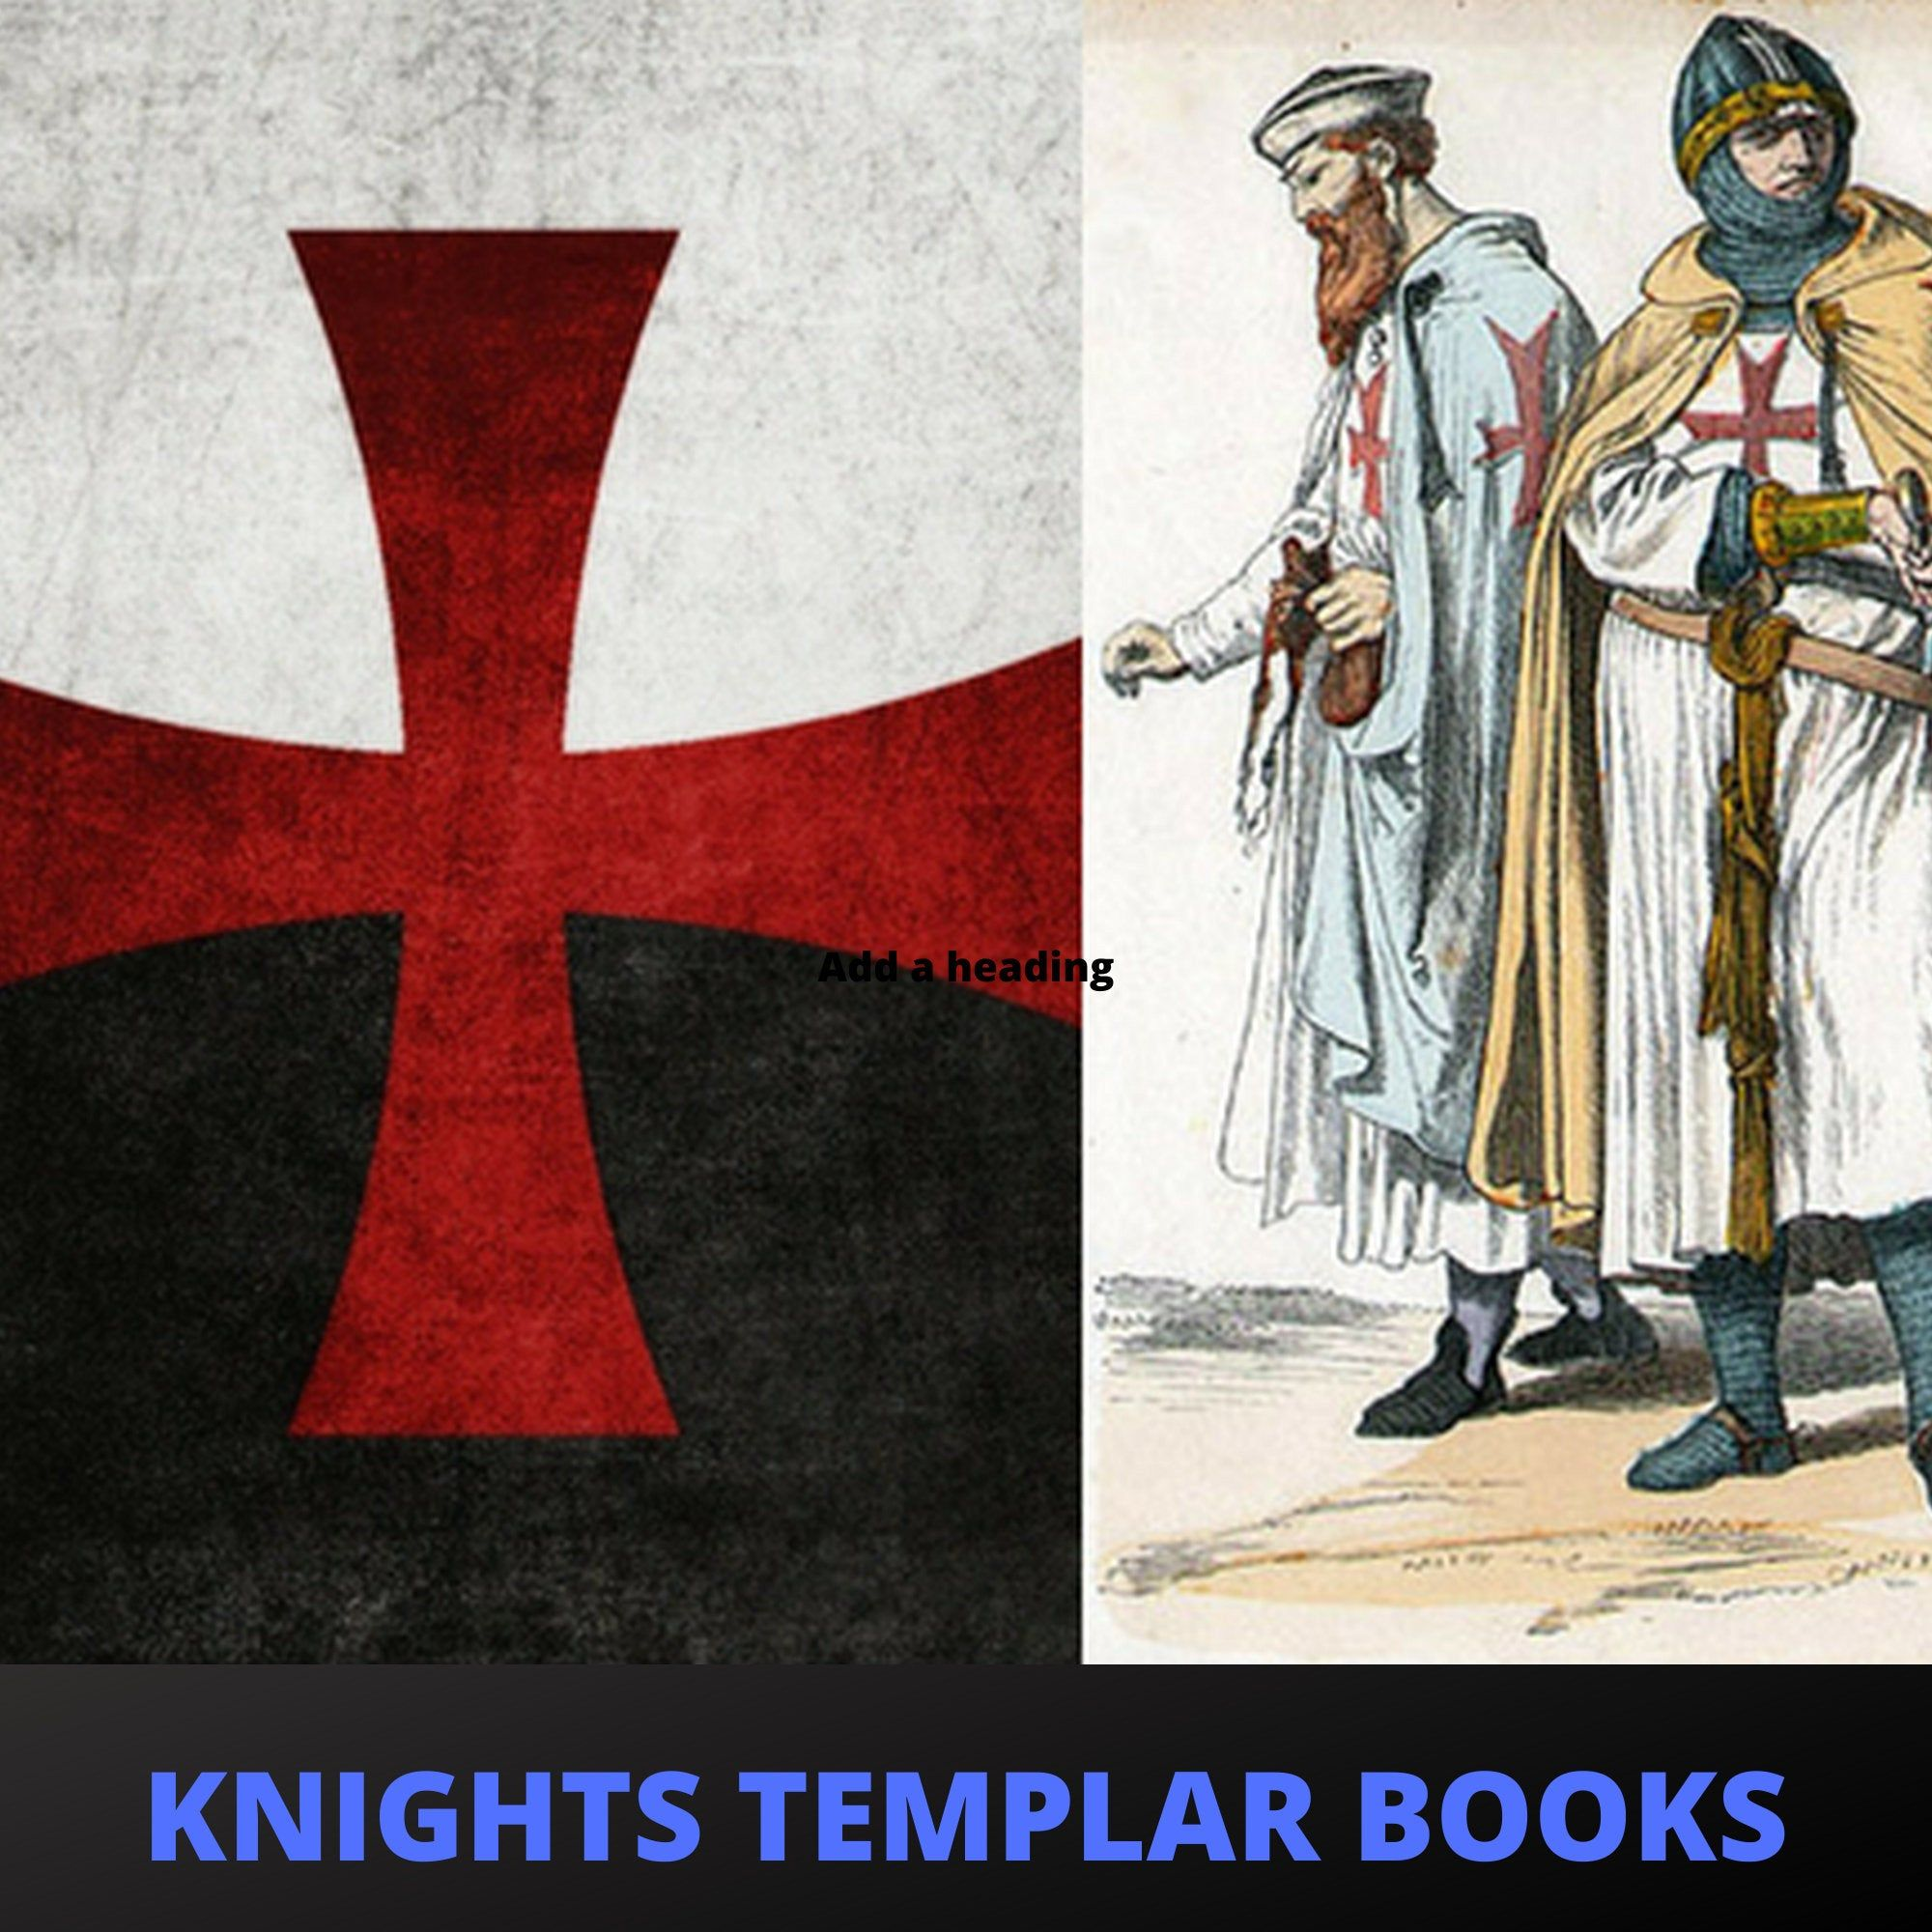 Knights Templar Crusades Freemasons Secret Rituals - 148 Vintage Rare Out-of-print PDF Books